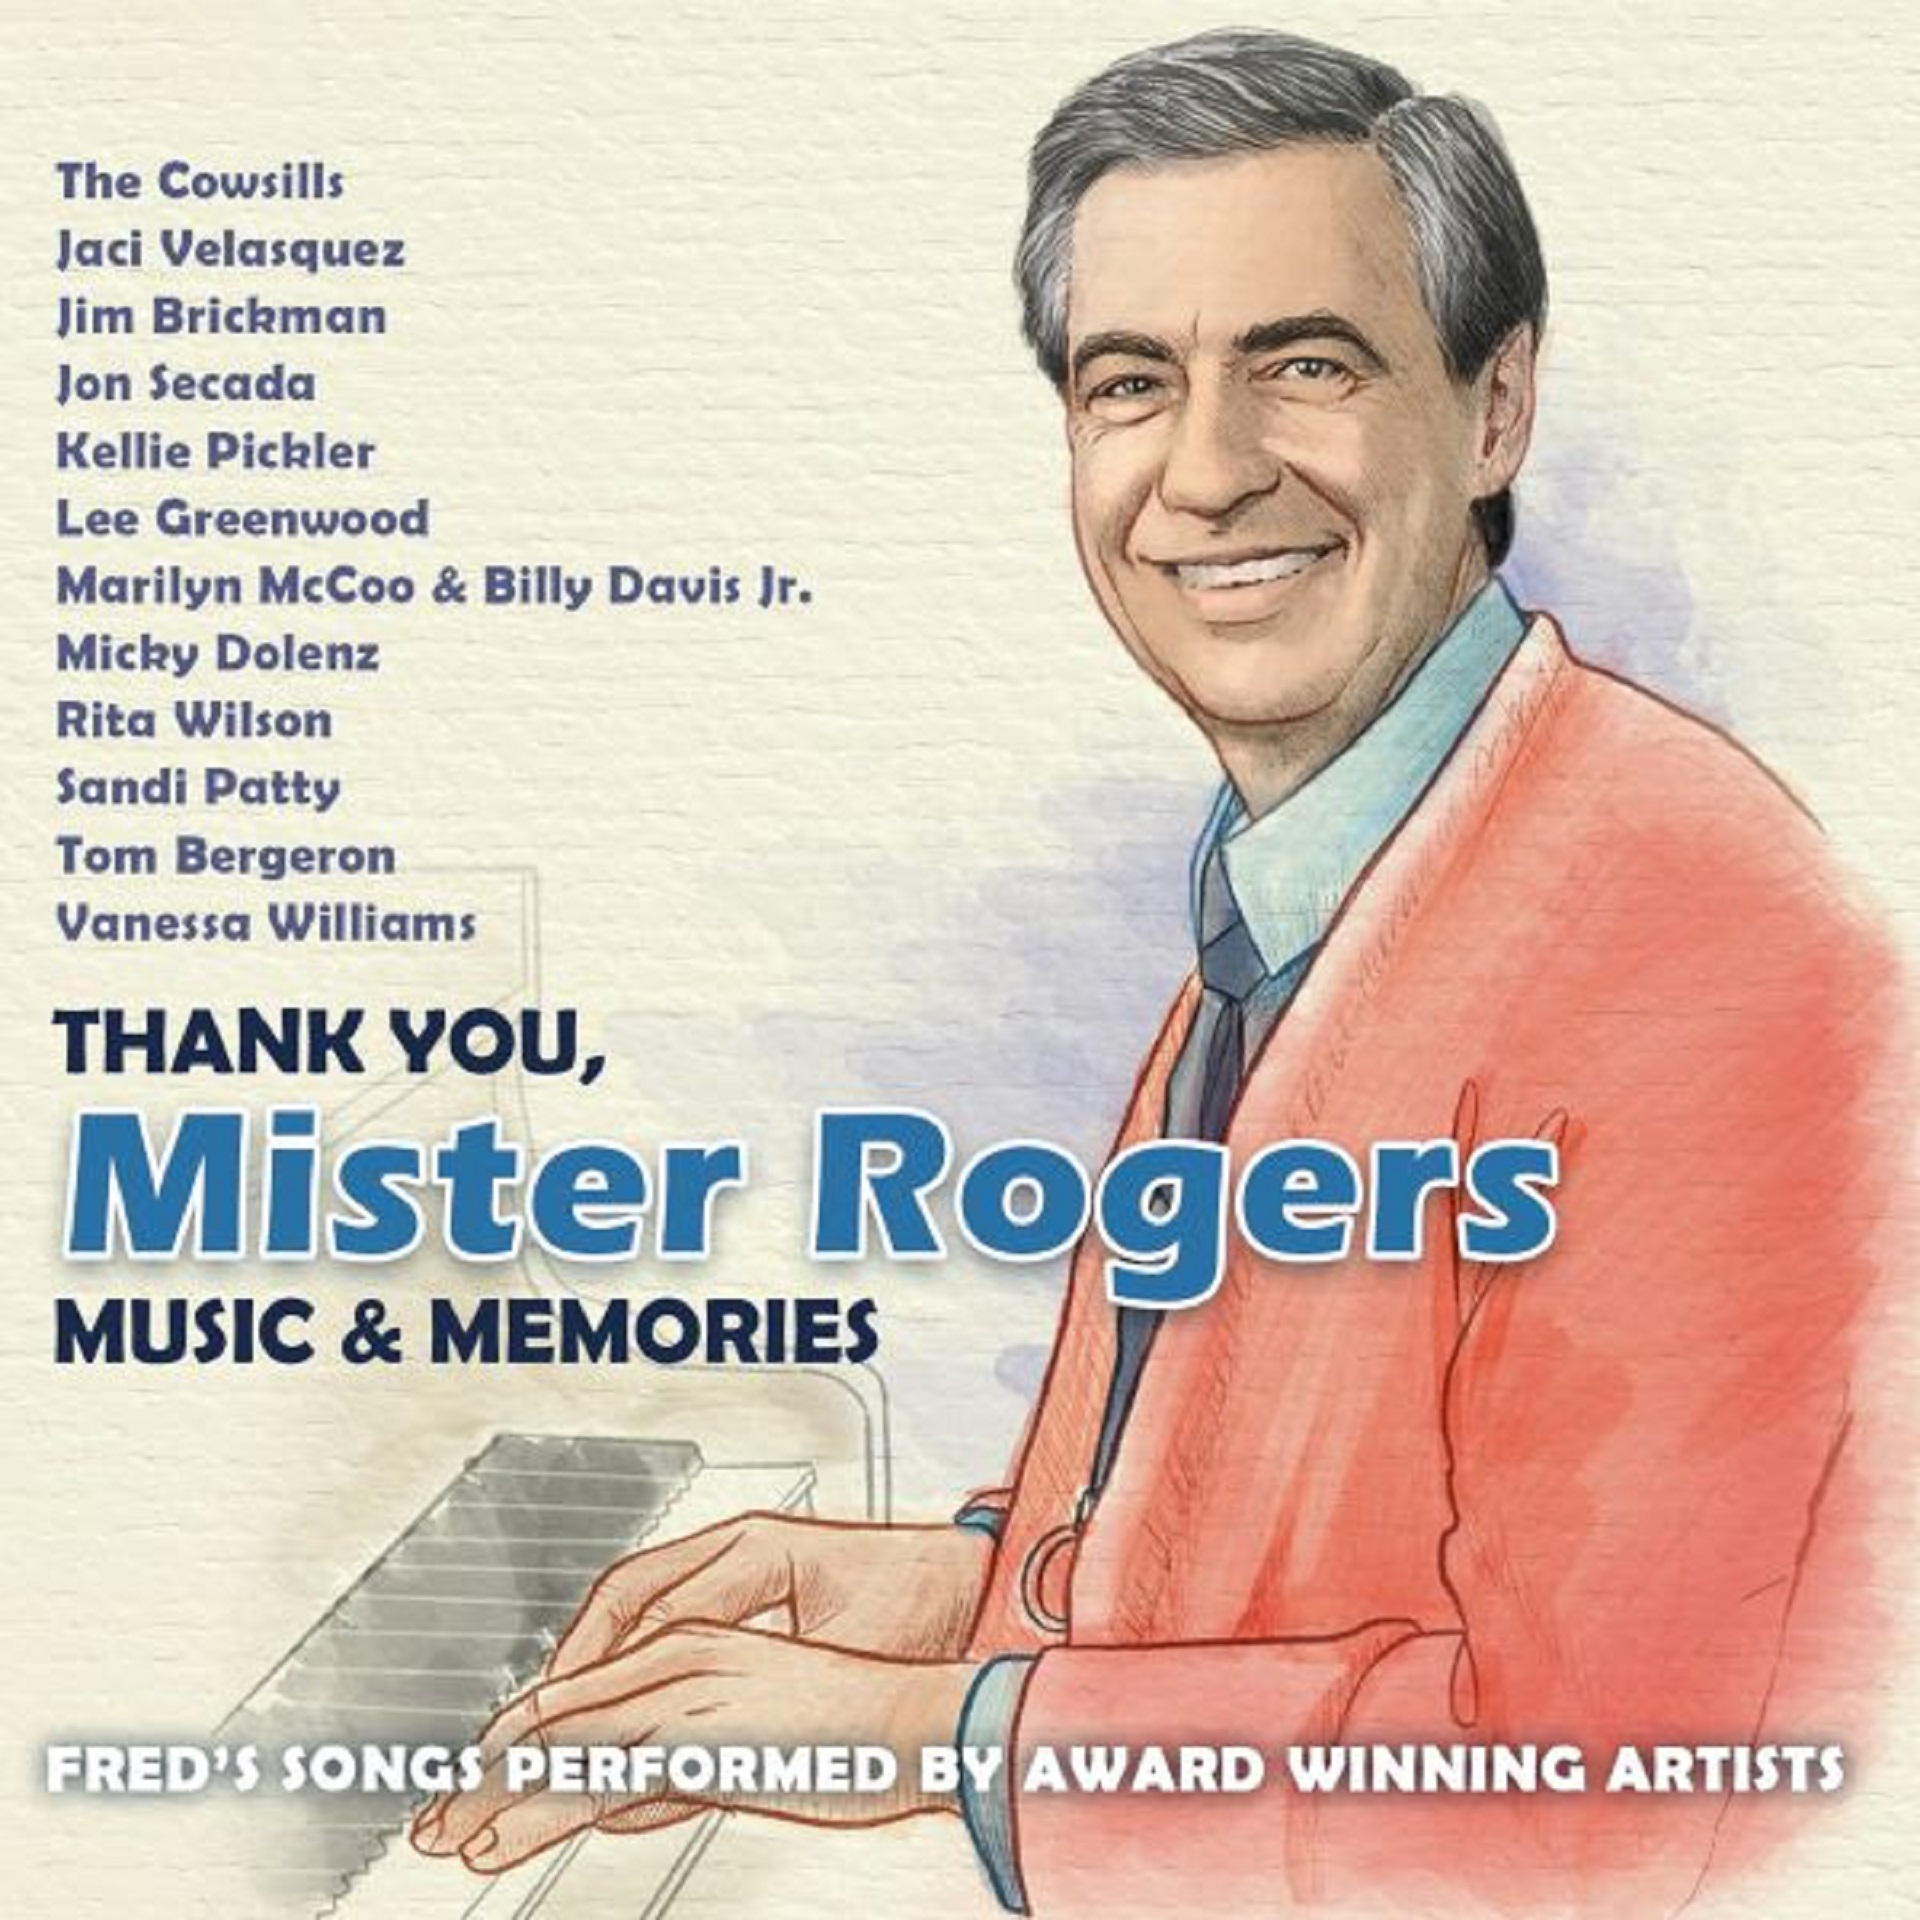 'Thank You, Mister Rogers: Music & Memories' Album Available Now